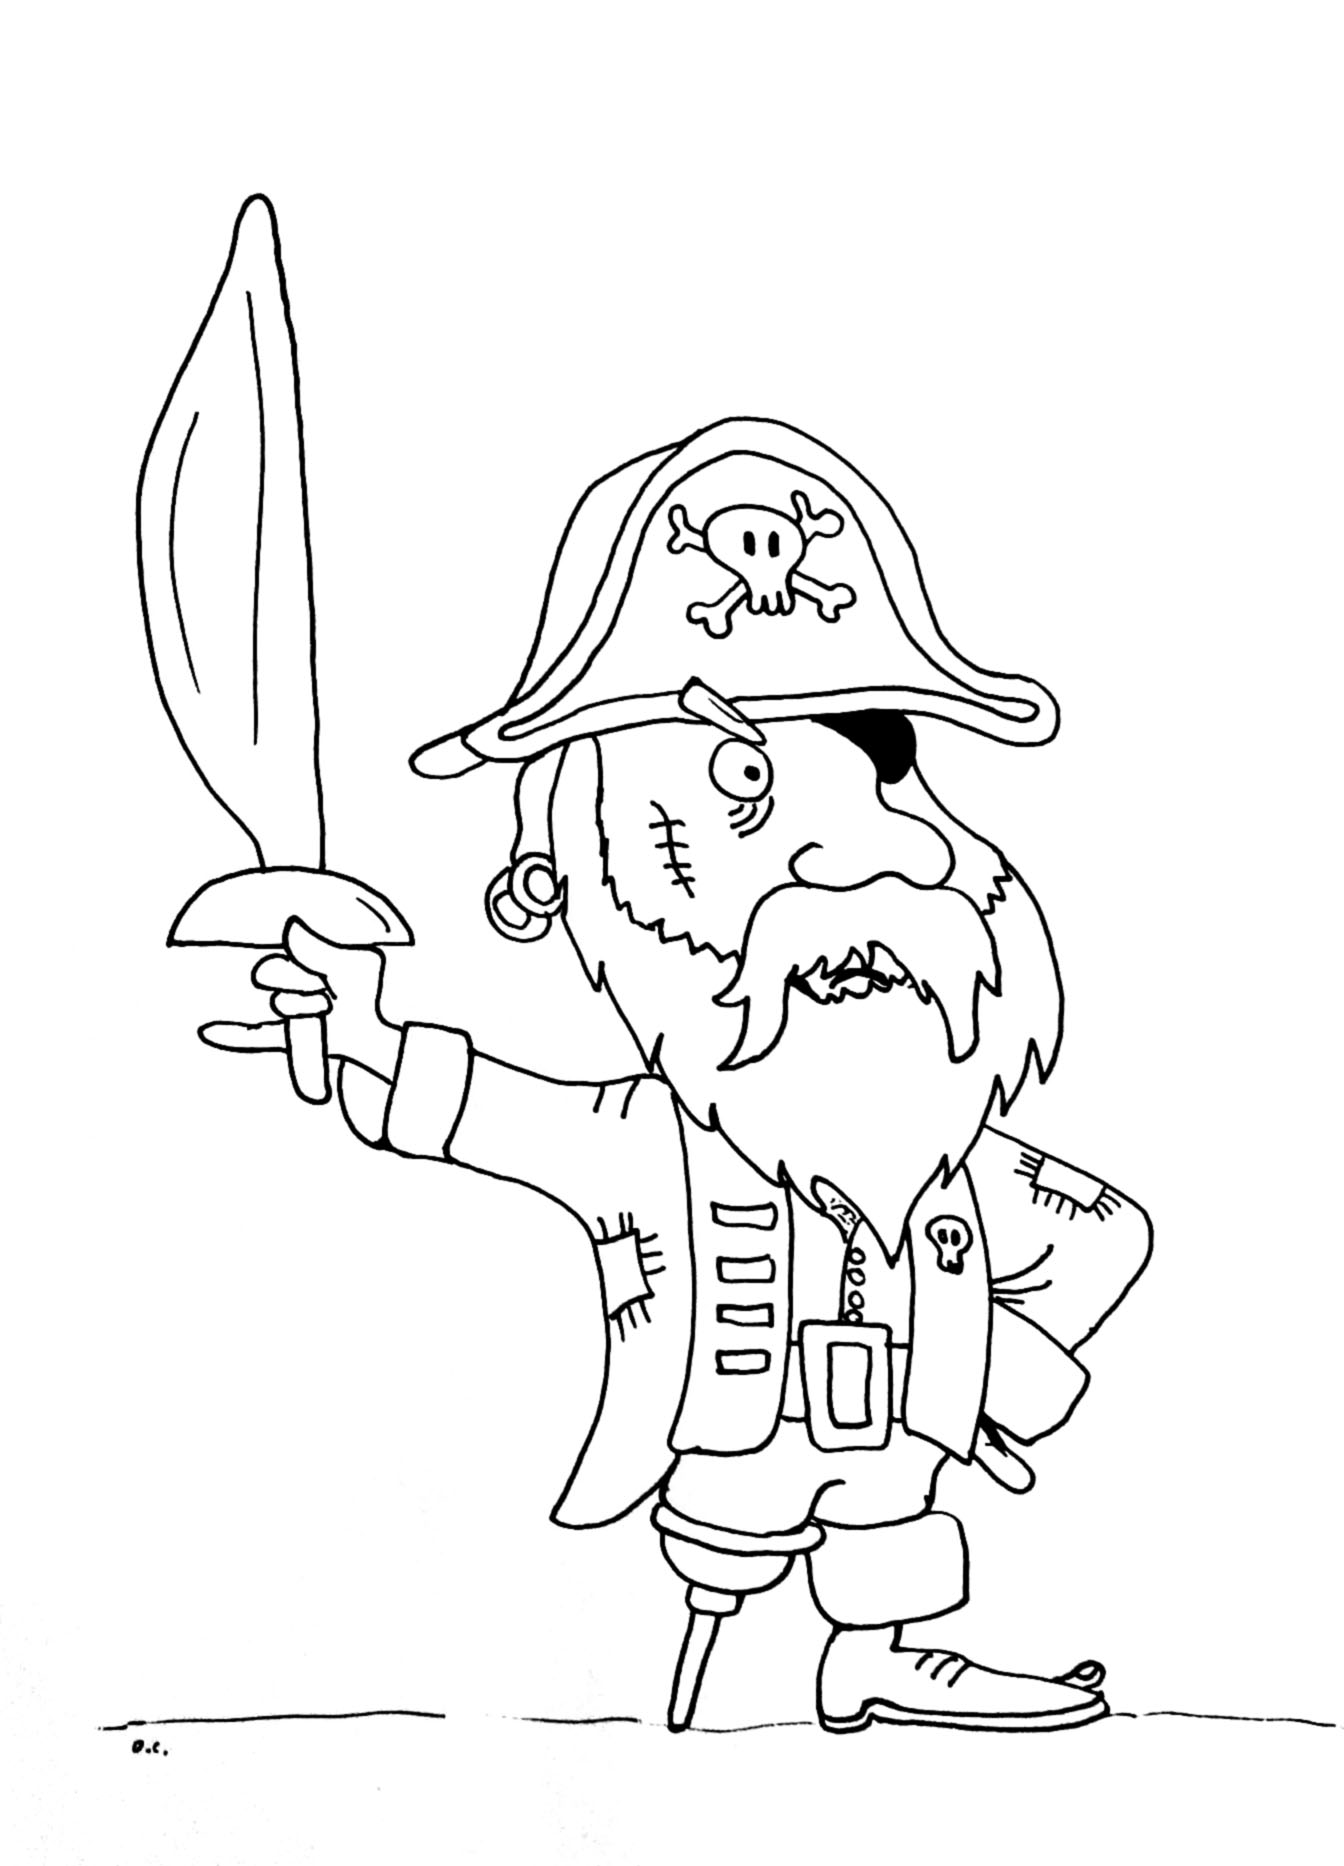 pirate images to color coloring page old pirate pirate to color images